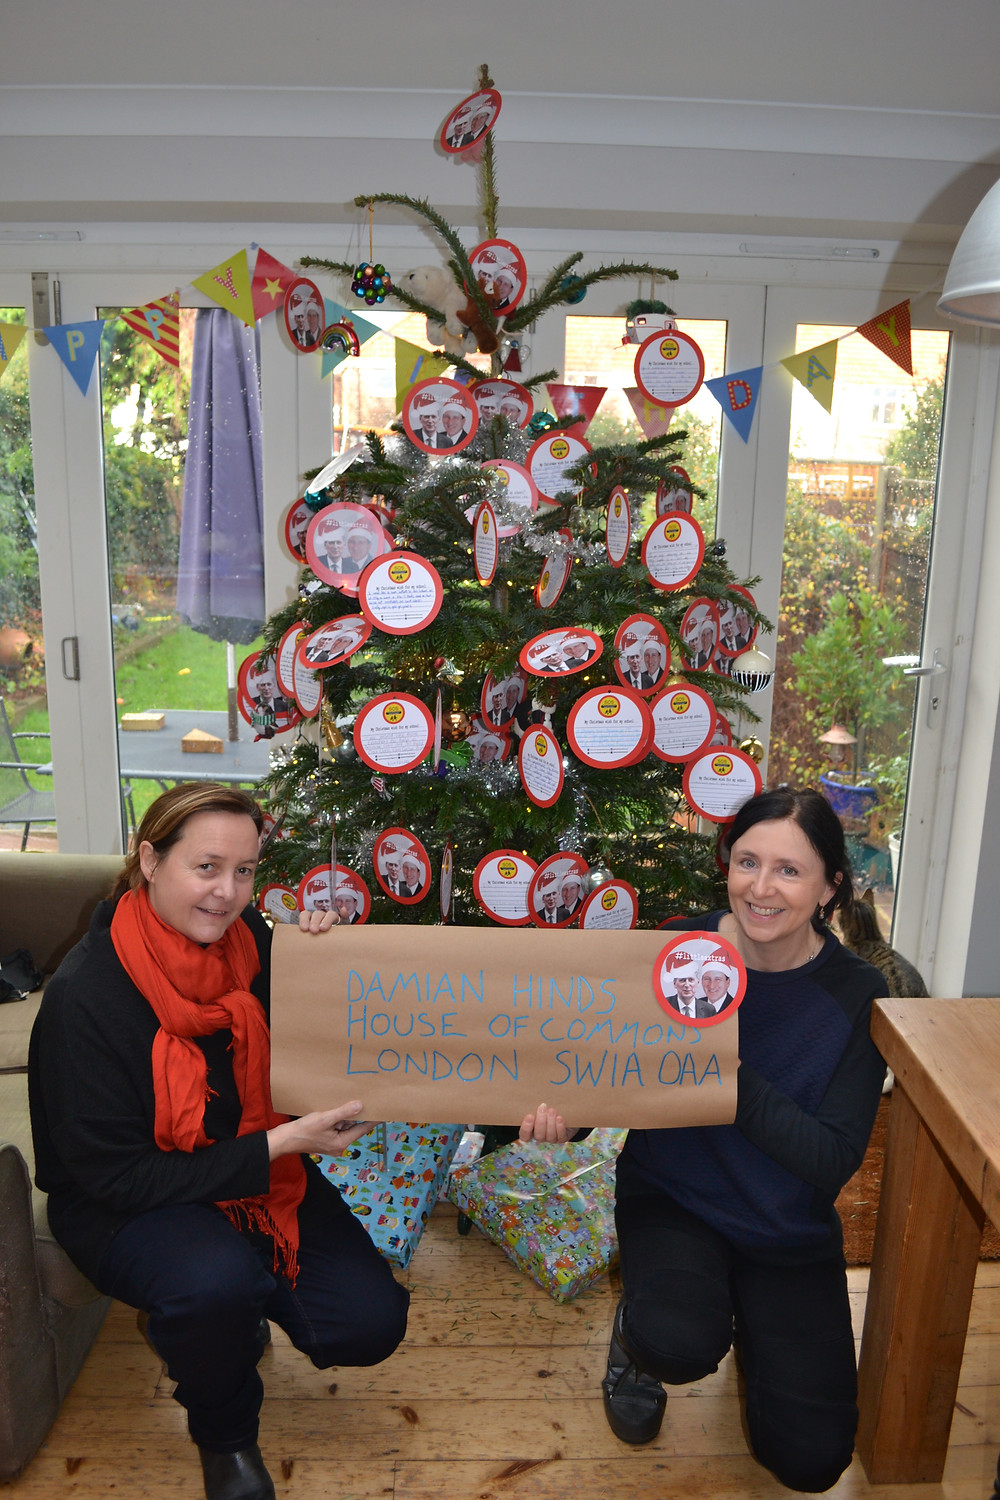 Mel Pickett and Patricia Clarke from Save our Schools West Sussex in front of a Christmas tree decorated with 2D baubles with students' wishes for their schools